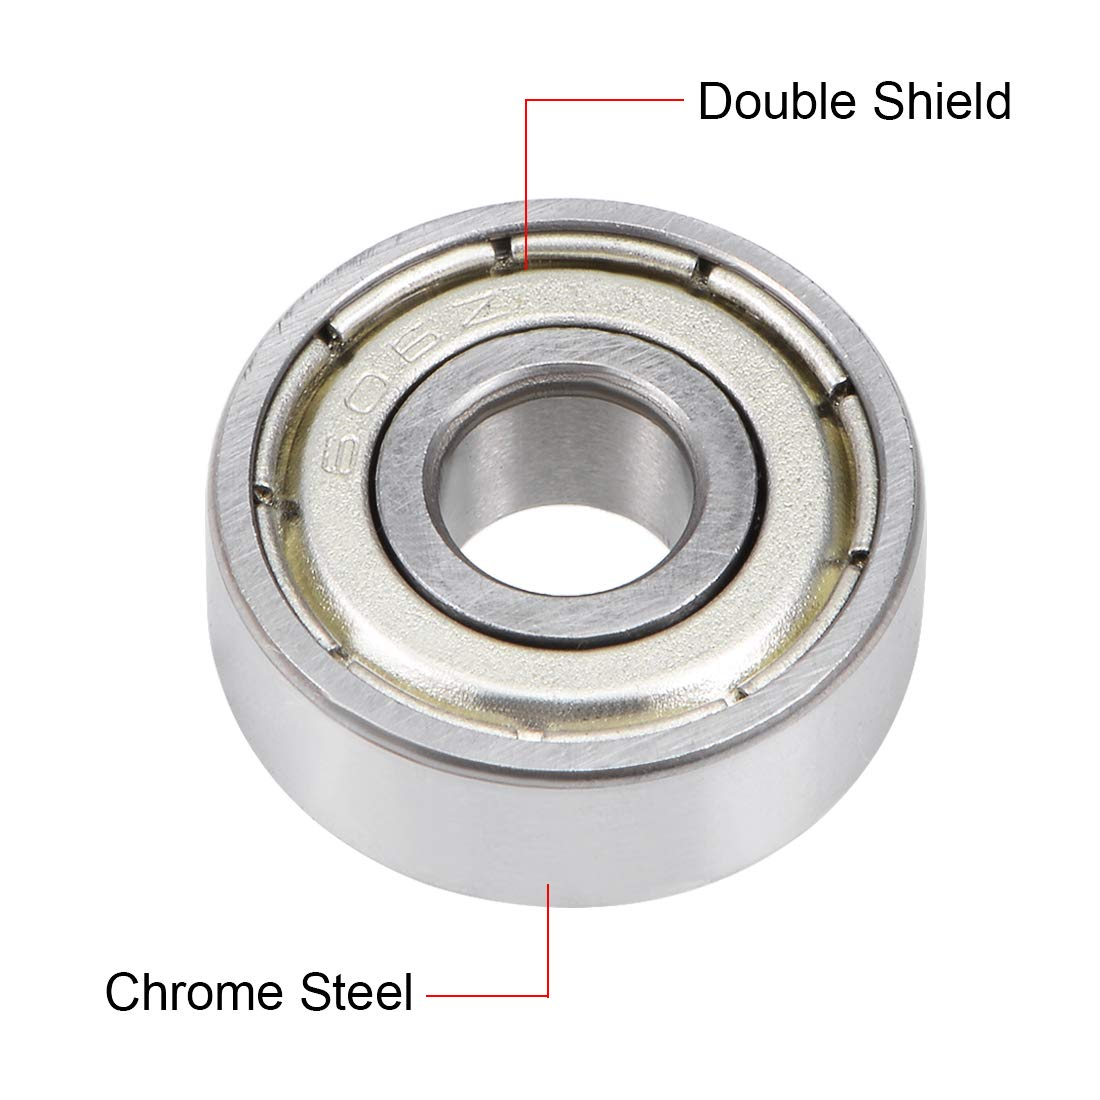 uxcell/® 606ZZ Deep Groove Ball Bearing 6x17x6mm Double Shielded Chrome Steel Bearings 20-Pack